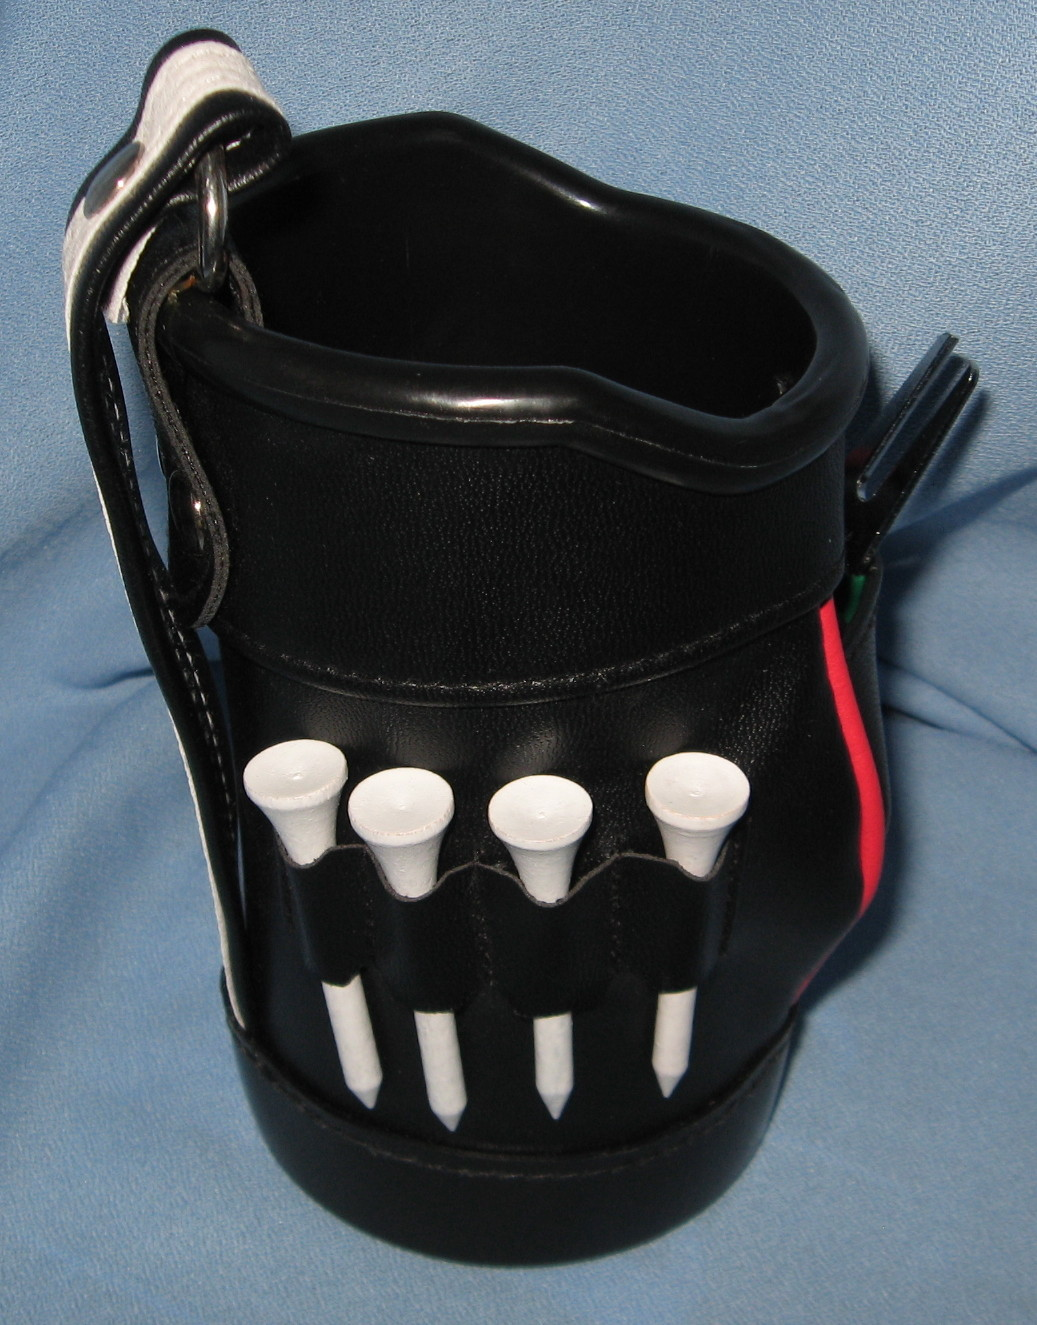 Totes Golf Bag Drink Holder Cooler divot tool tees Black golfer gag gift  H16